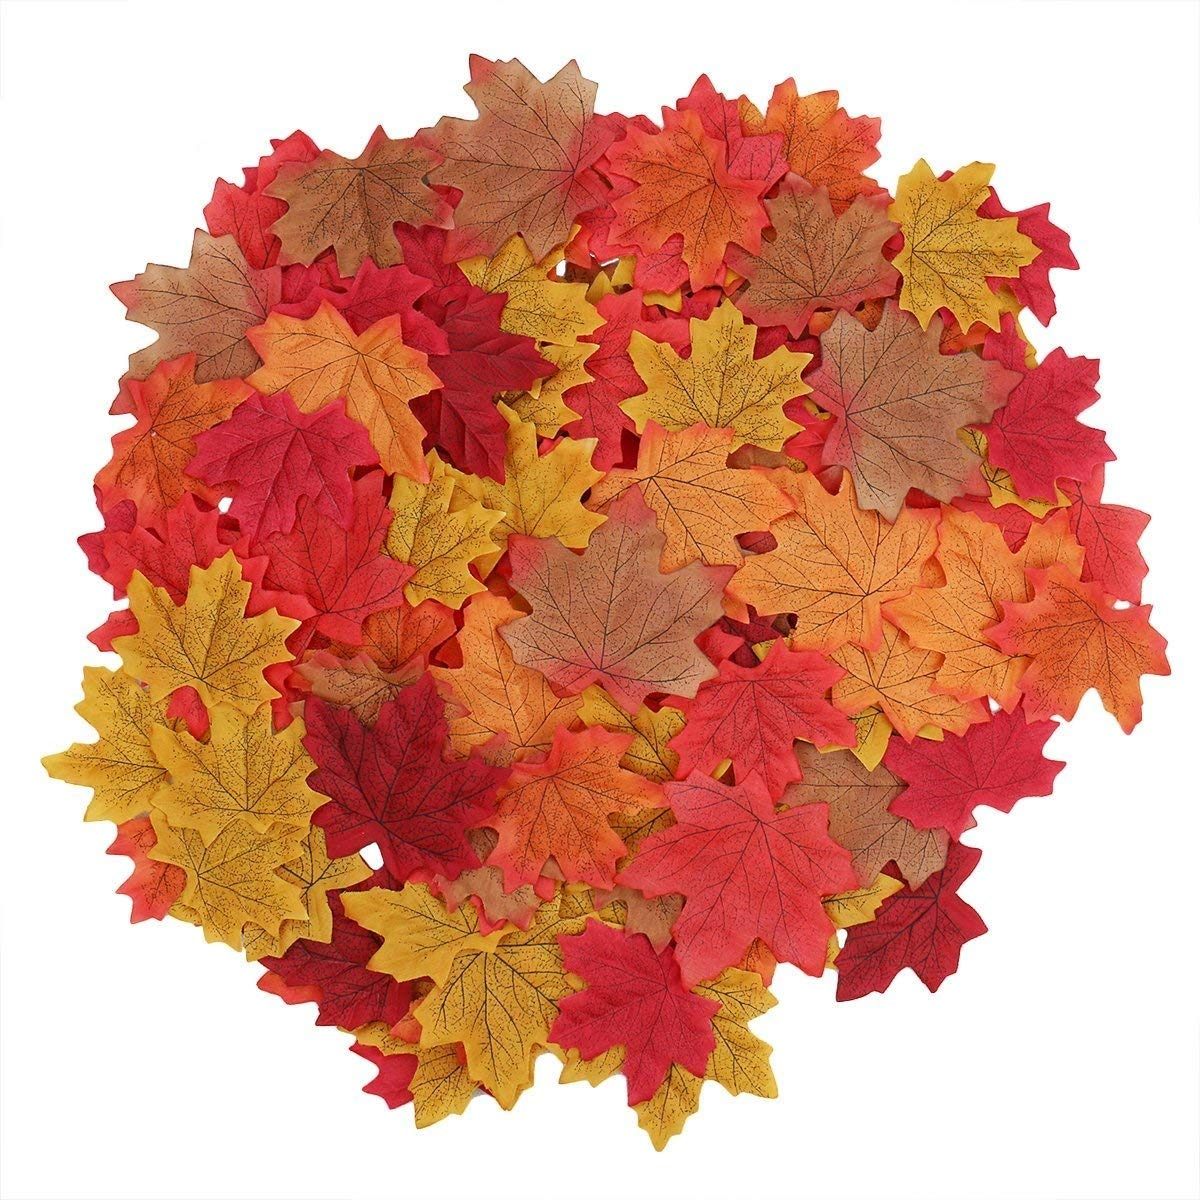 Luxbon Approx 300Pcs Artificial Autumn Fall Maple Leaves Bulk Multi Colors Great Autumn Table Scatters for Weddings /& Autumn Parties /& Events and Fall Decorating